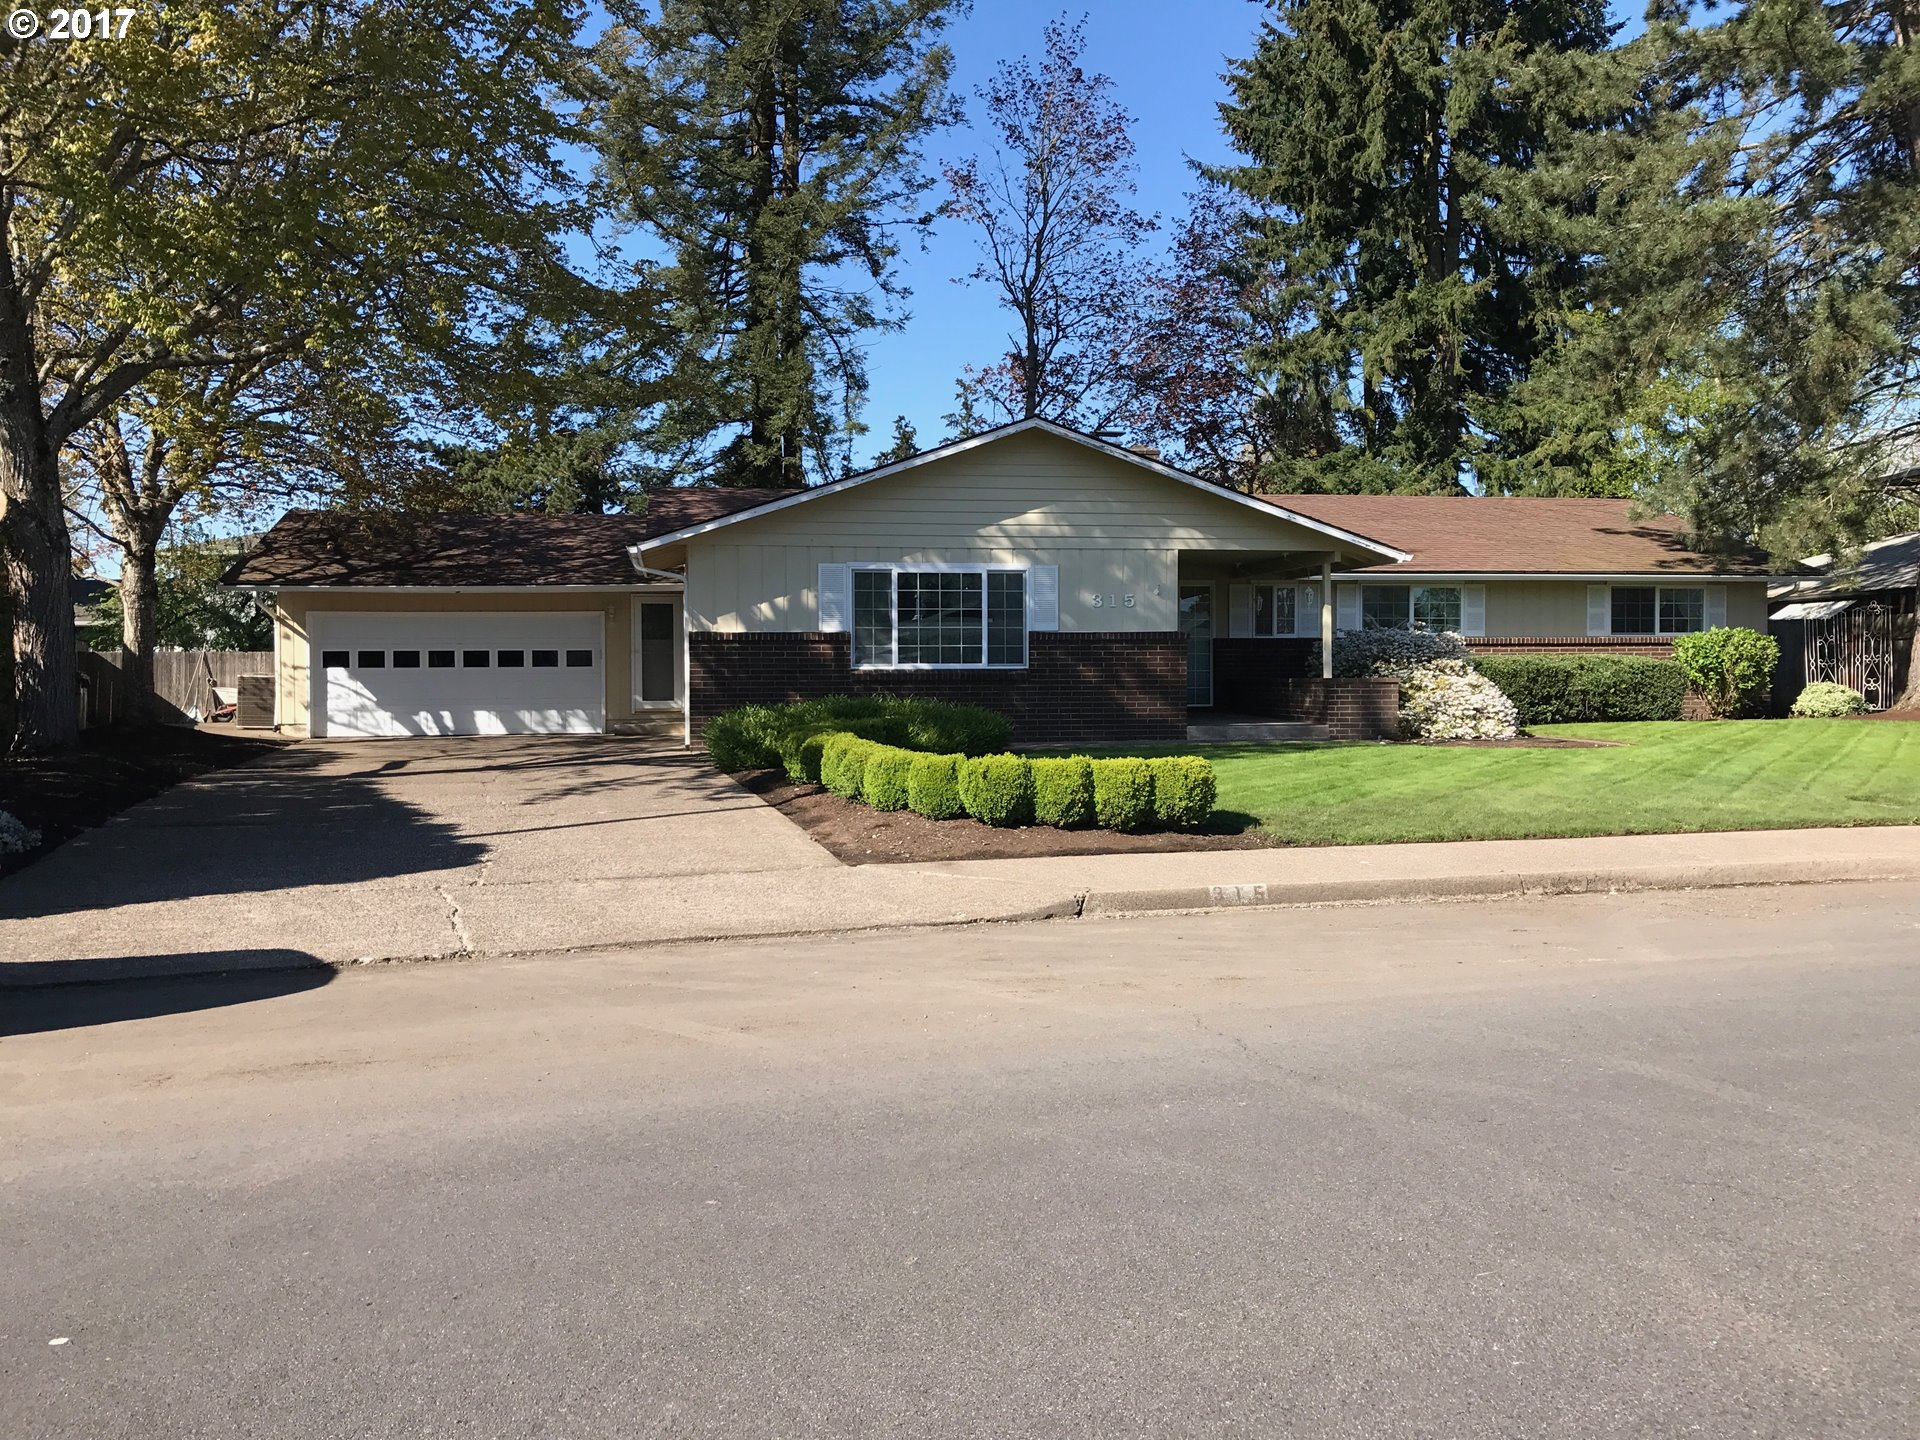 2204 sq. ft 4 bedrooms 2 bathrooms  House For Sale,Eugene, OR